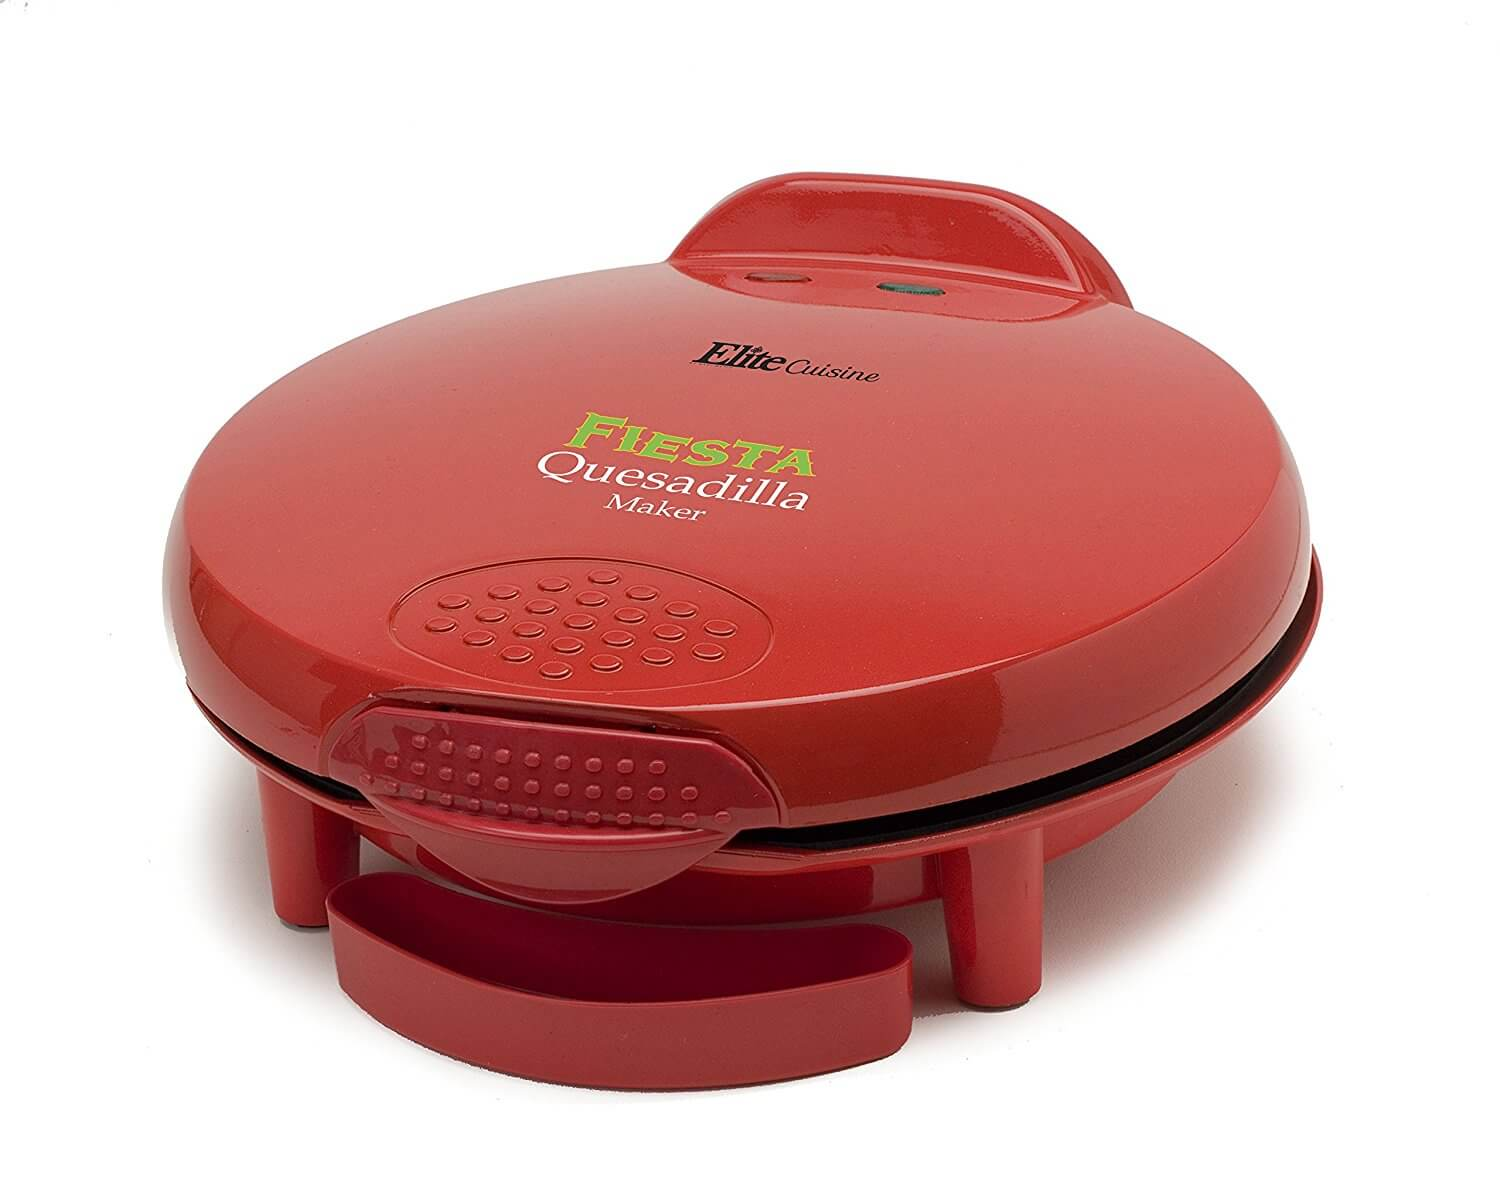 Elite Cuisine EQD-118 Maxi-Matic 11-Inch Non-Stick Quesadilla Maker